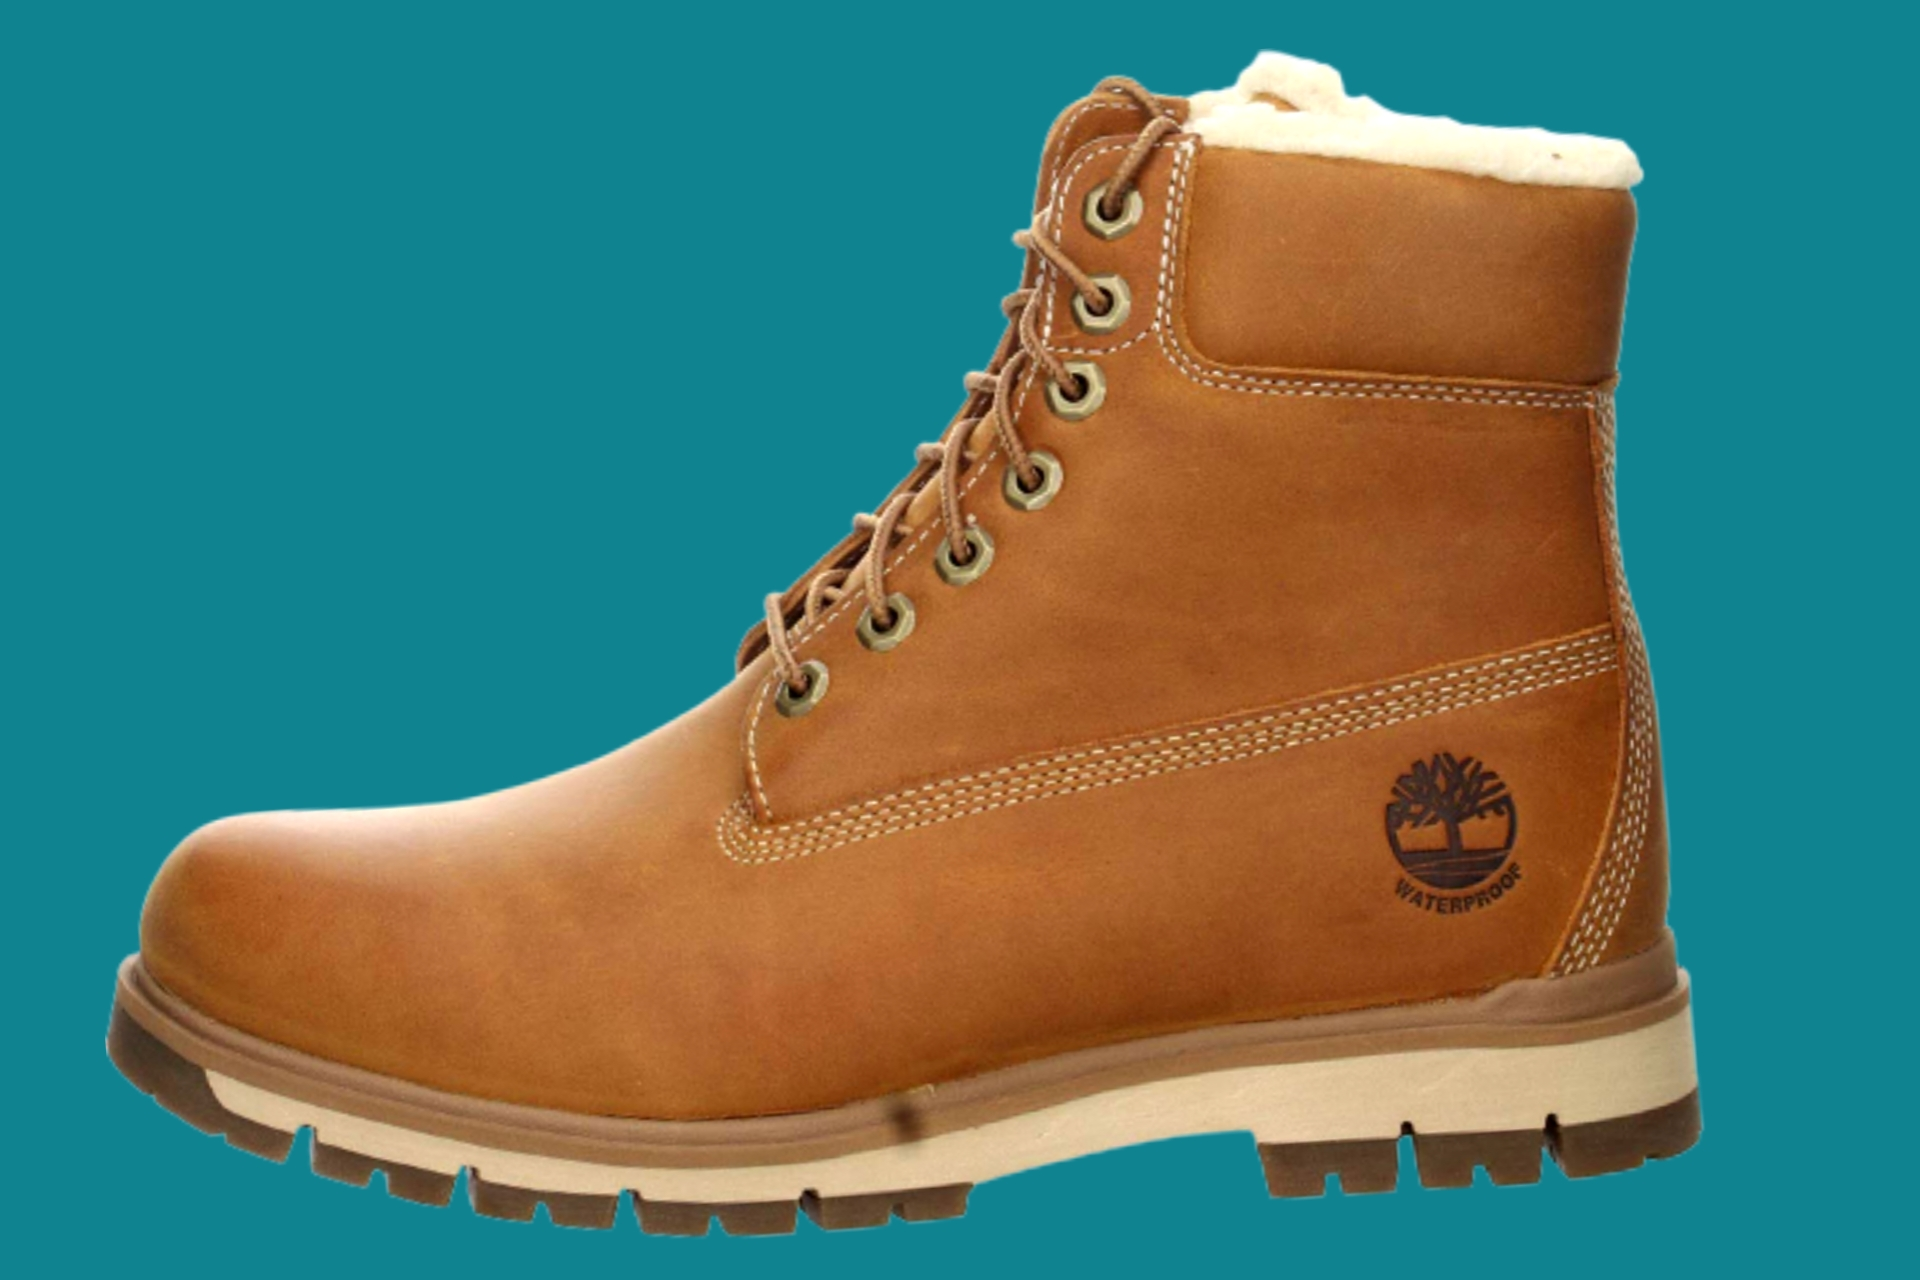 Outdoor Timberland boots for hiking